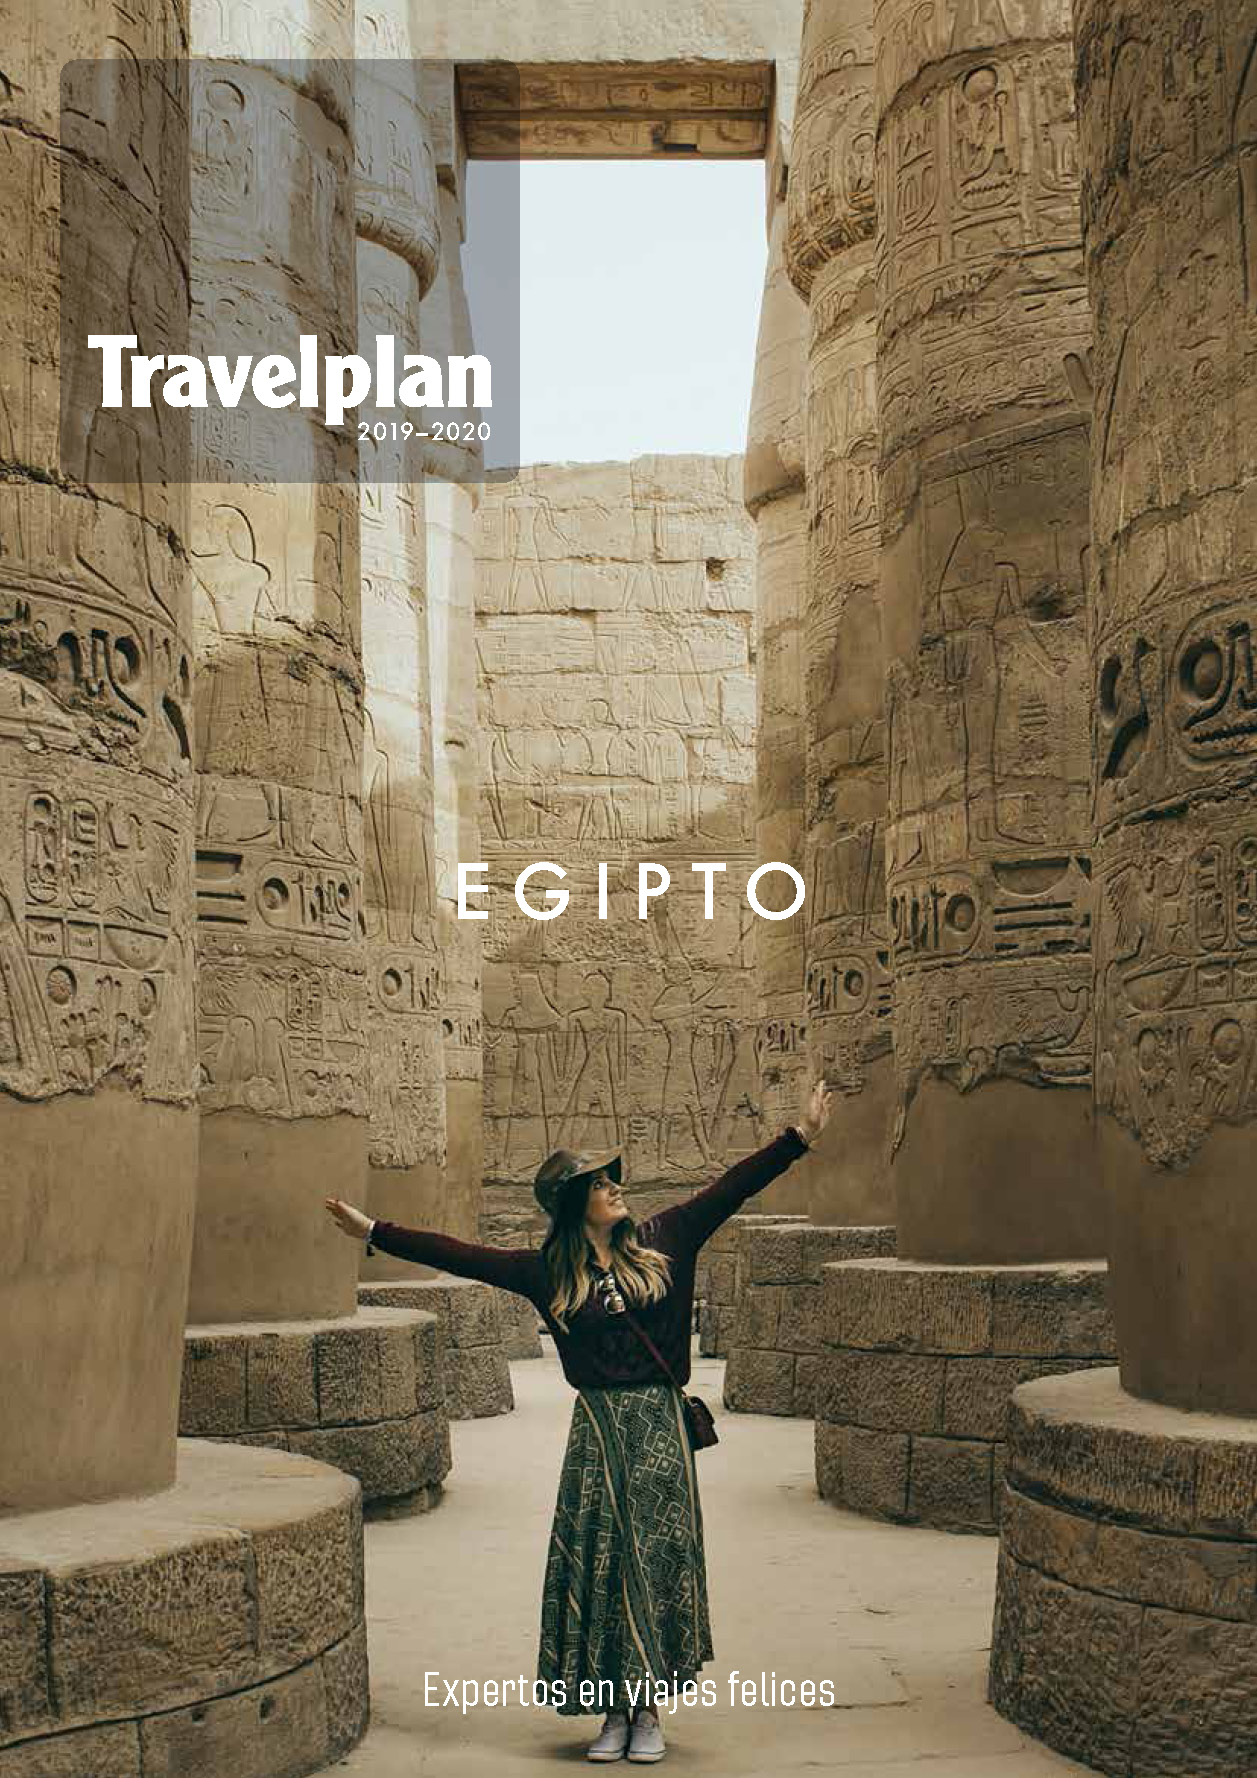 Catalogo Travelplan Egipto 2019-2020